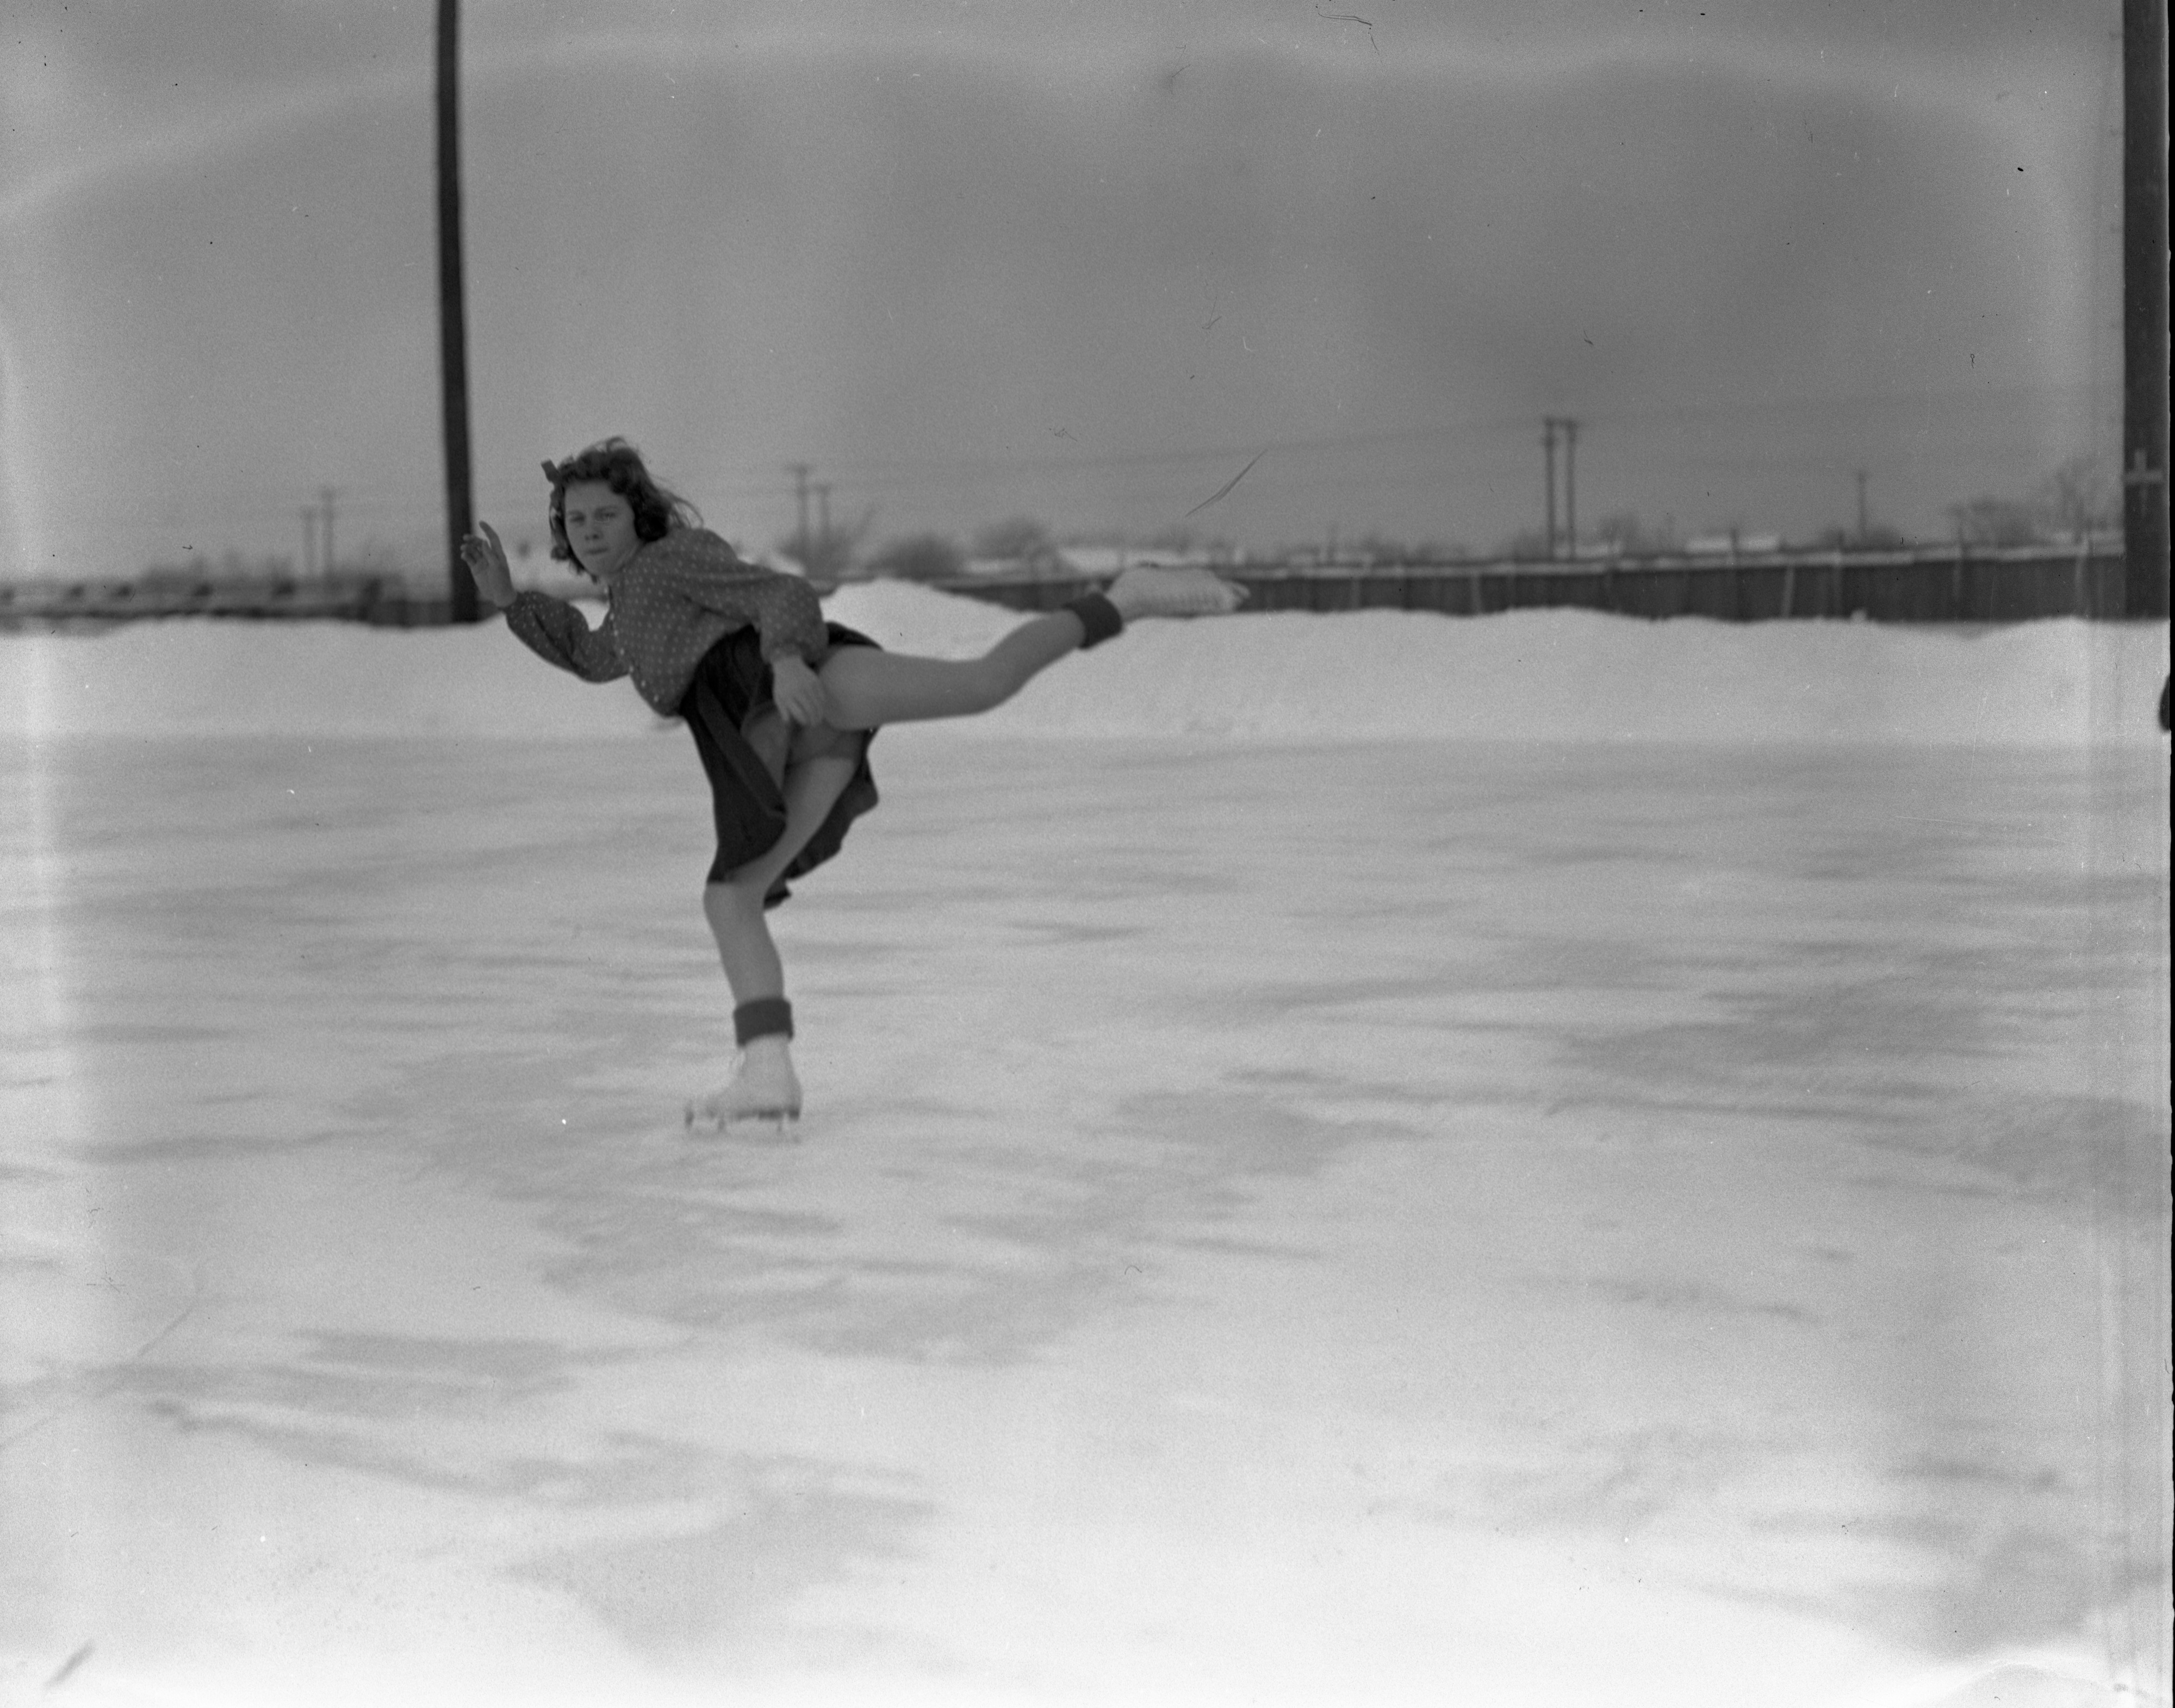 LaVerne Conant Figure Skates On Outdoor Ice Rink In Traverse City, January 1940 image